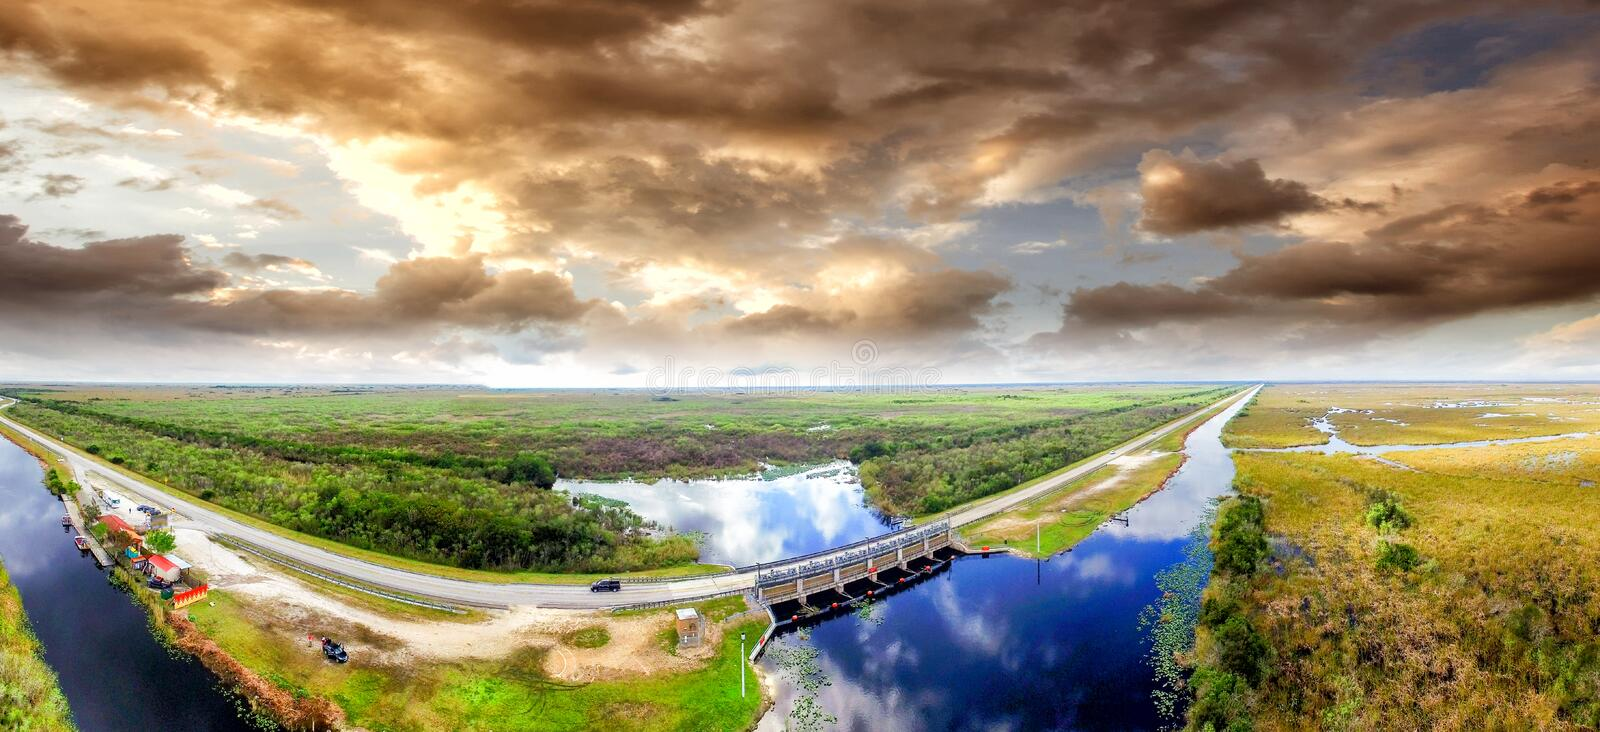 Erstaunliche Vogelperspektive des Everglades-Nationalparks, Florida stockfotos